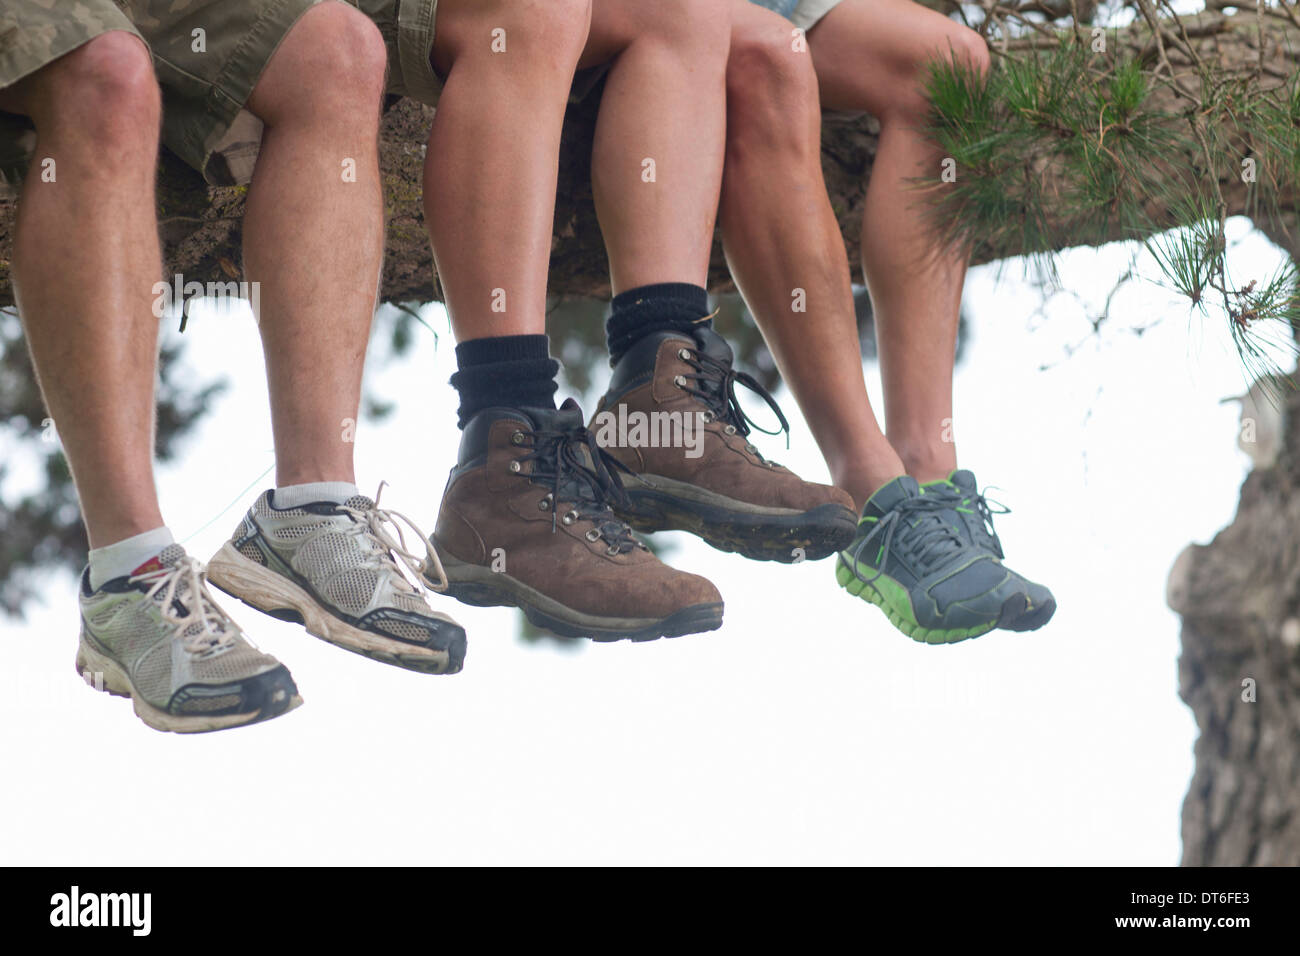 Legs of three male hikers sitting on tree branch - Stock Image